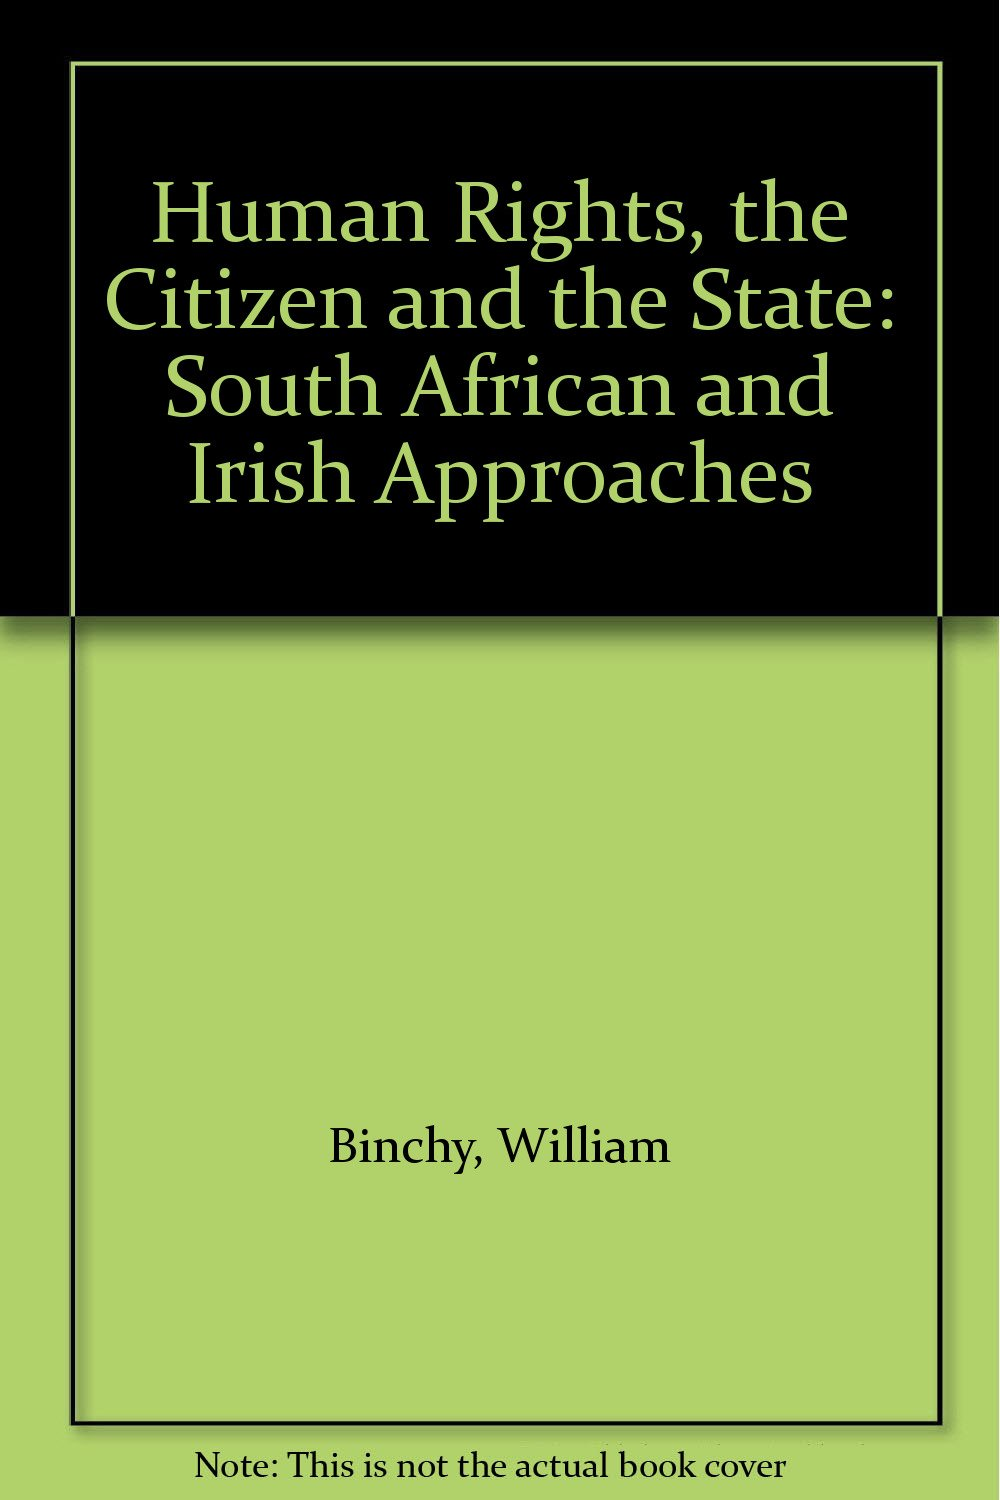 Read Online Human Rights, the Citizen and the State: South African and Irish Approaches PDF